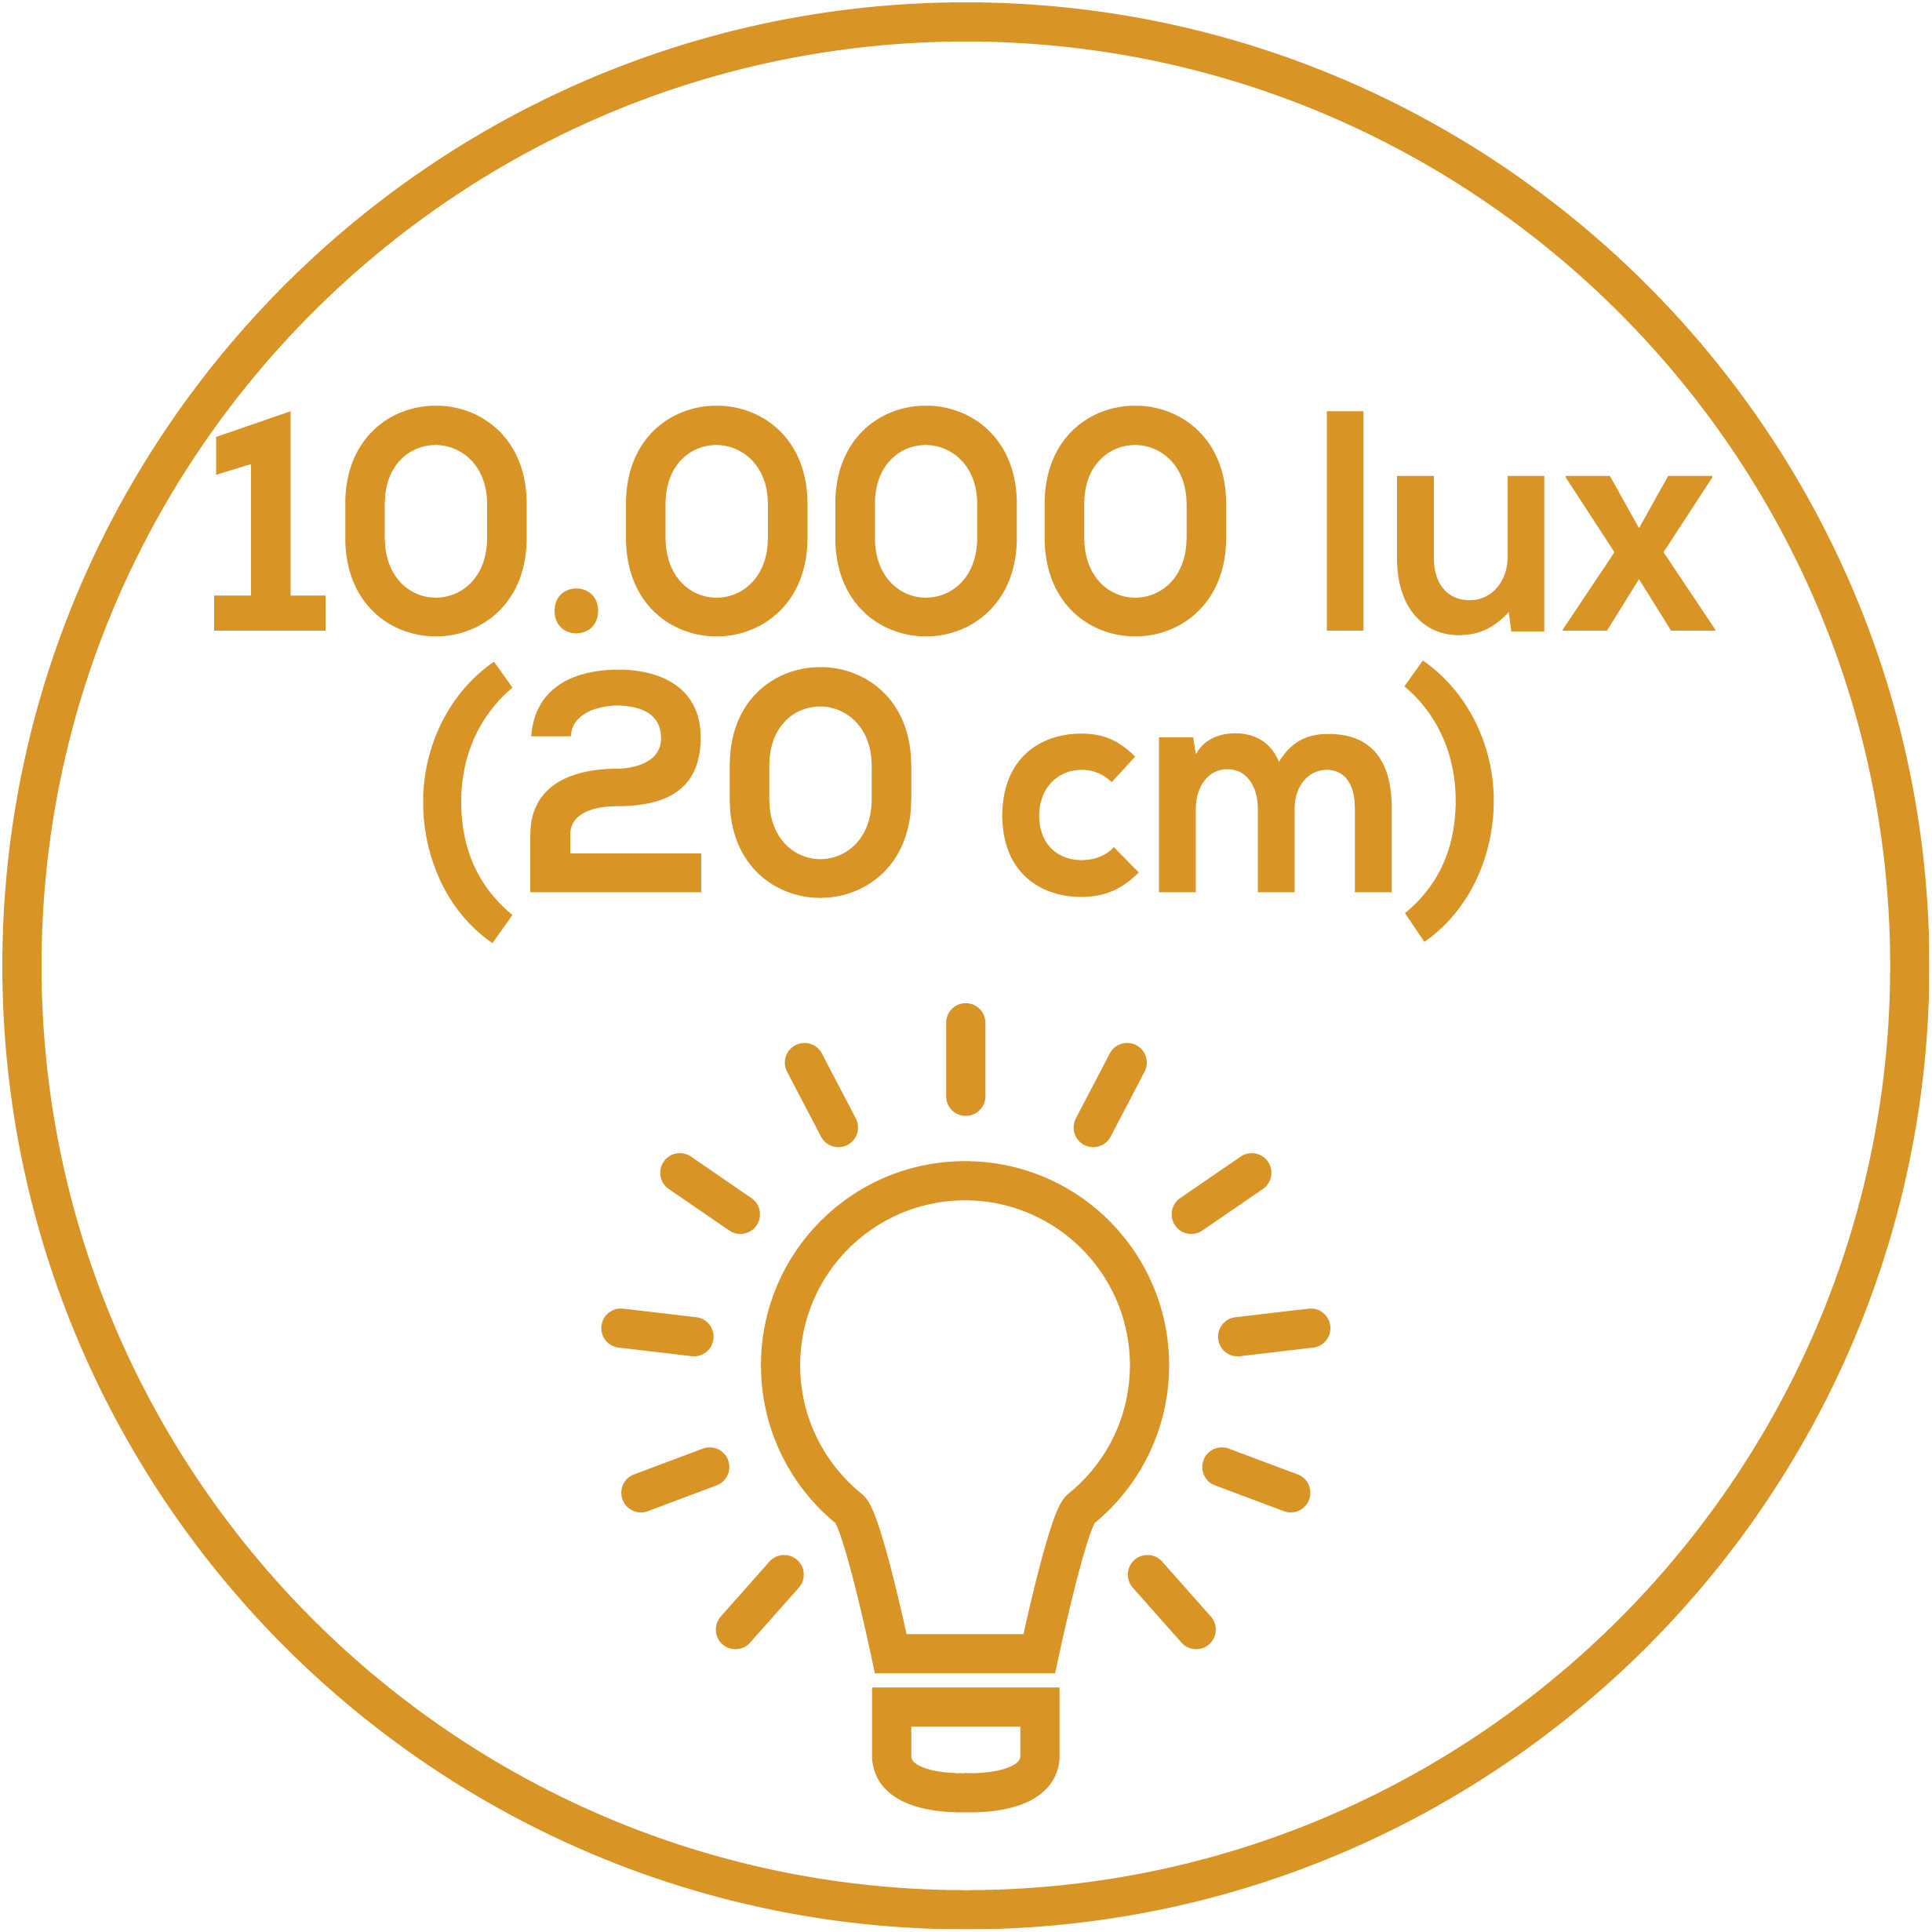 Light intensity of 10,000 lux Light intensity of 10,000 lux. Simulation of sunlight: Light intensity approx. 10,000 lux (distance of 20 cm)